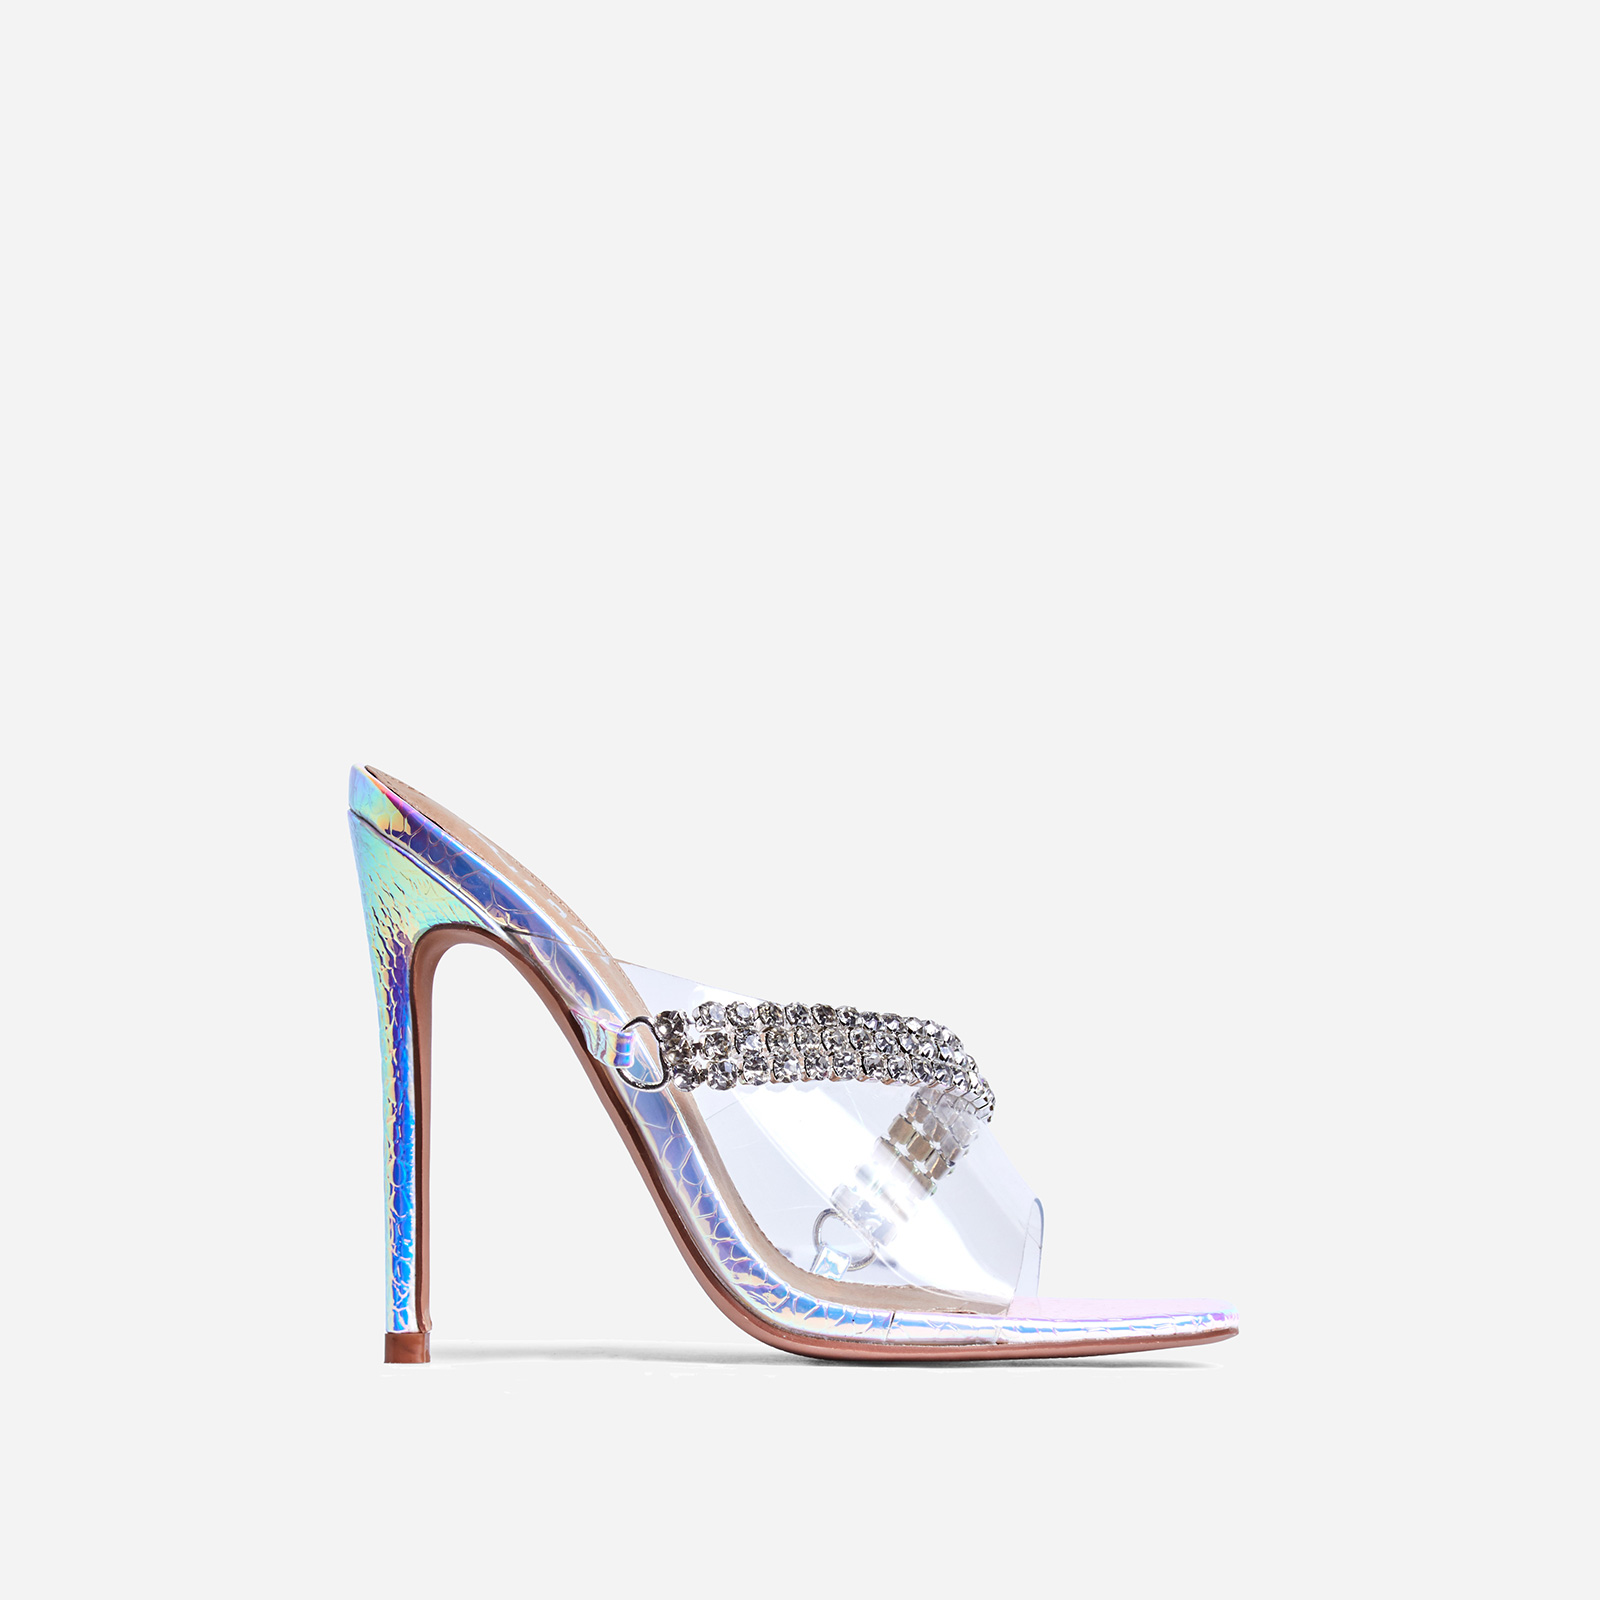 Peggy Diamante Detail  Square Peep Toe Heel Mule In Silver Holographic Snake Print Faux Leather